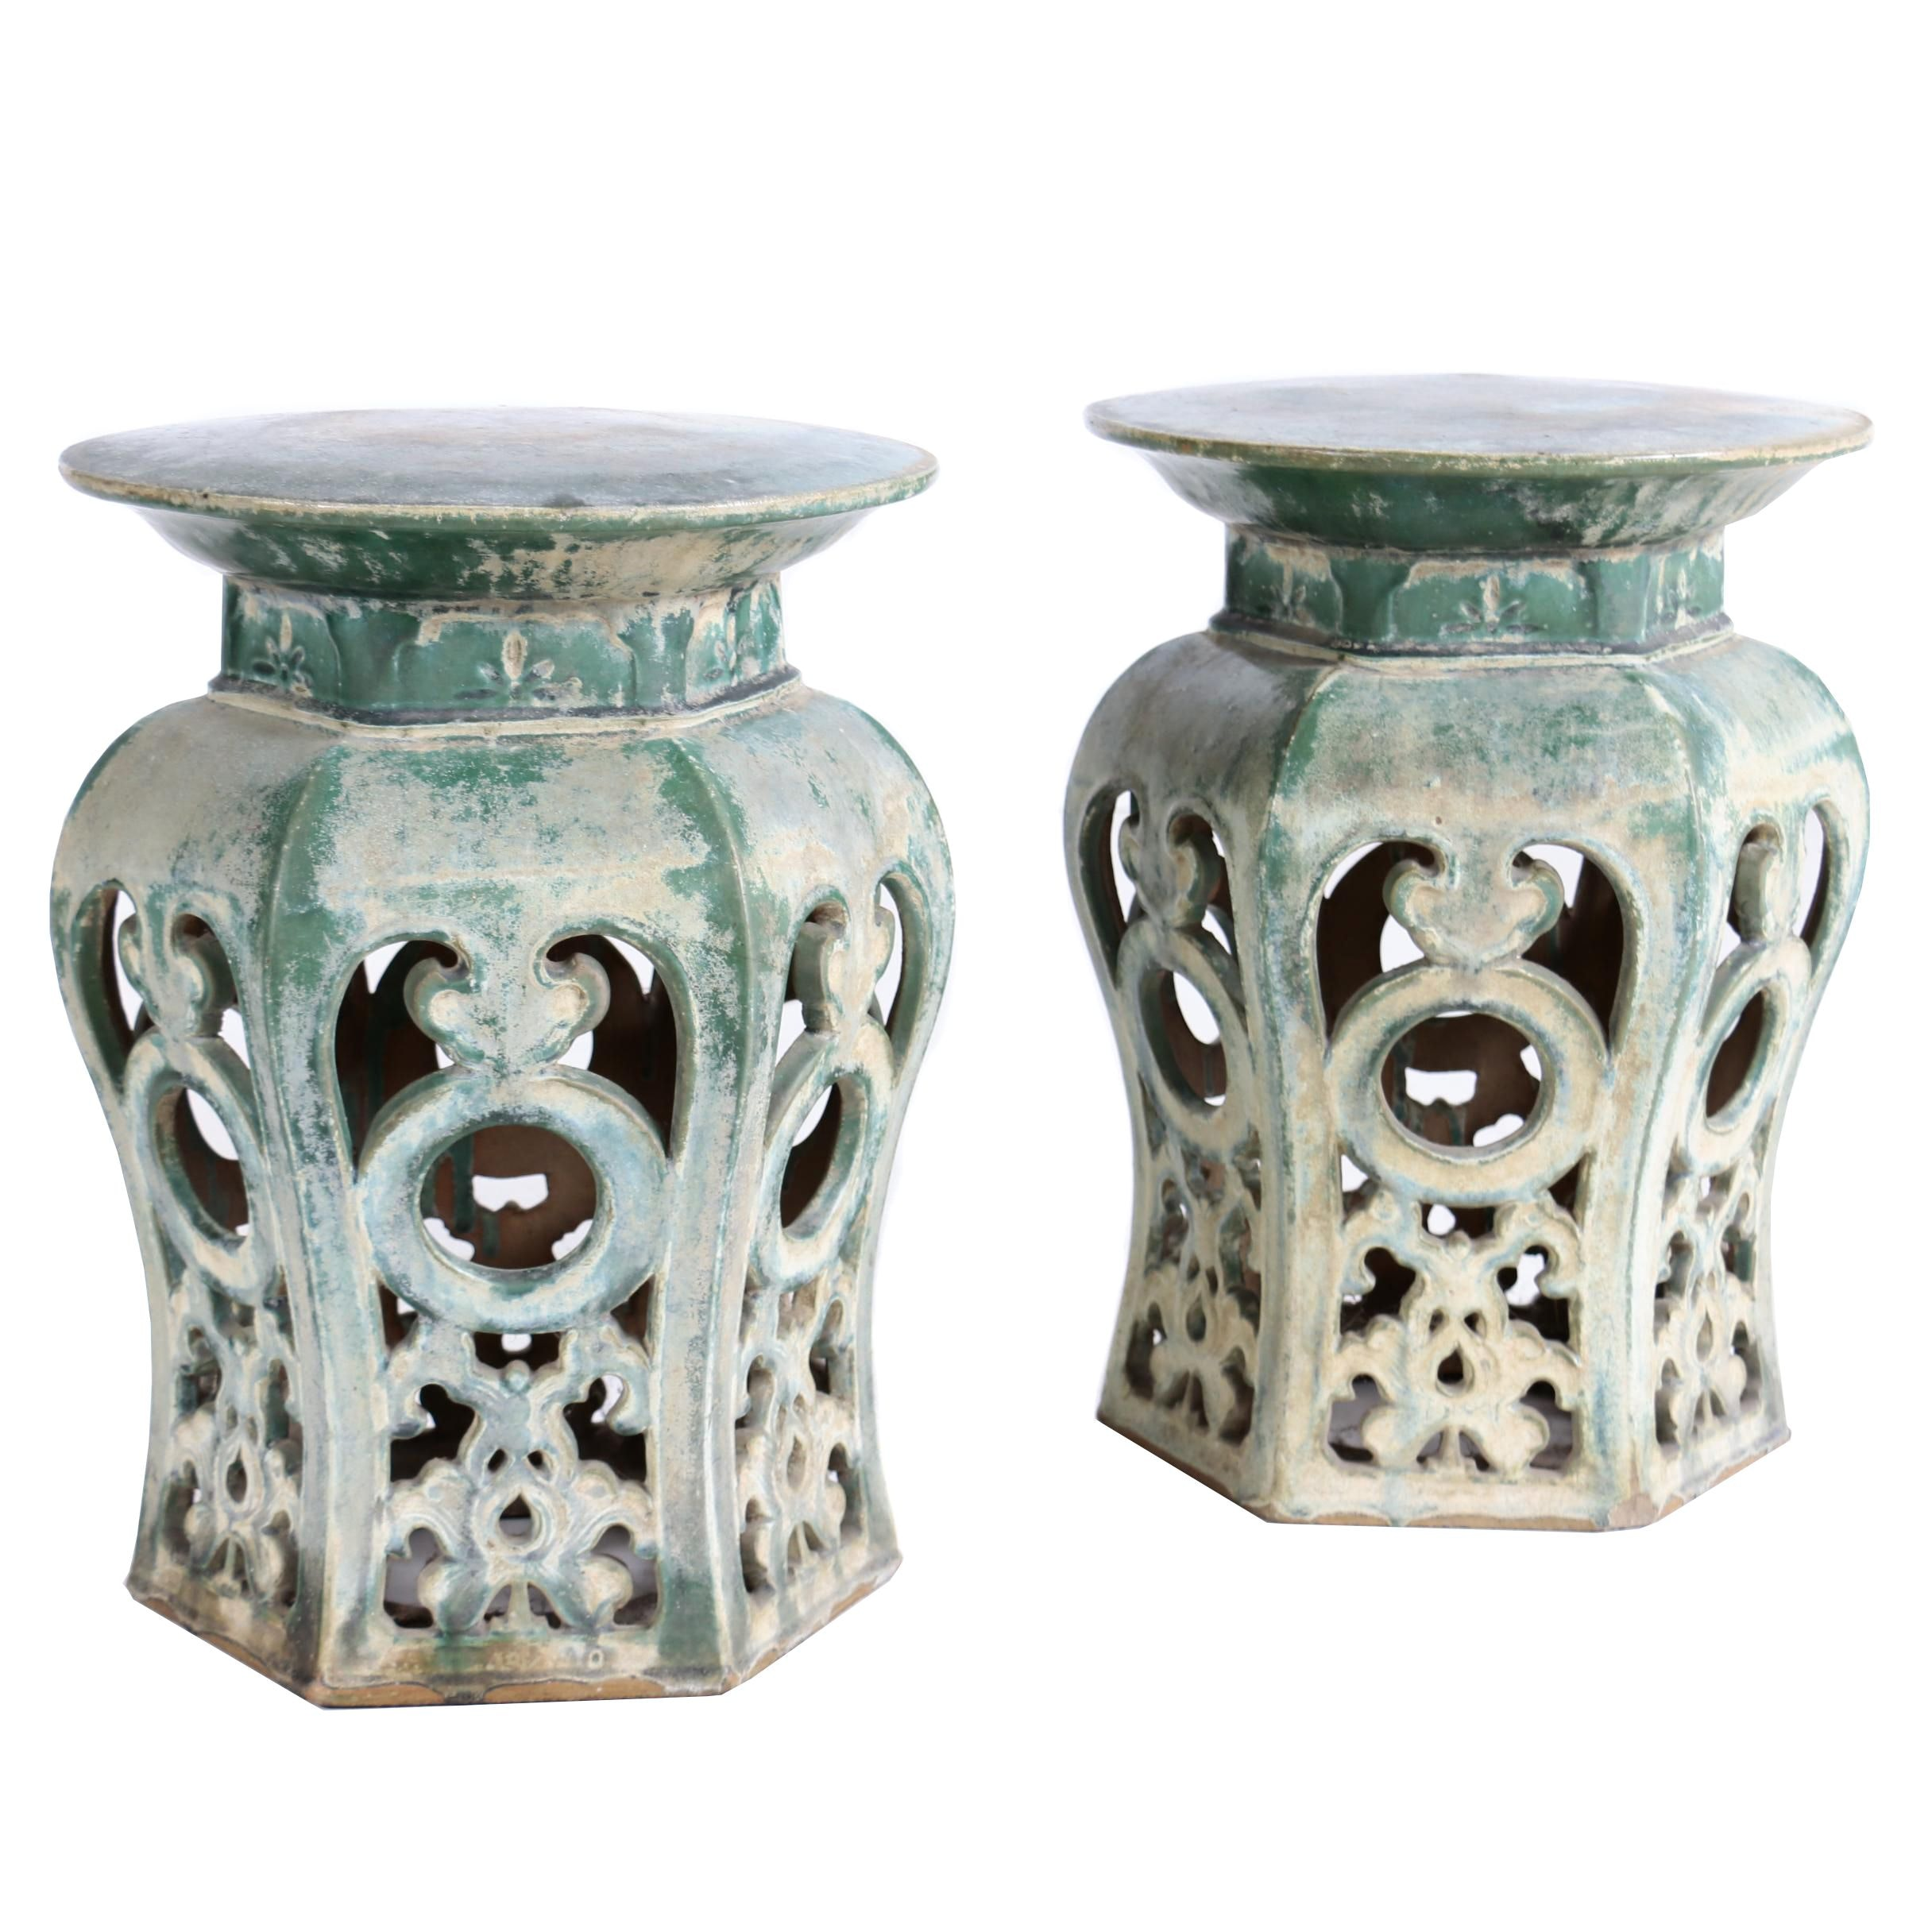 Early Qing Dynasty Chinese Ceramic Garden Seats